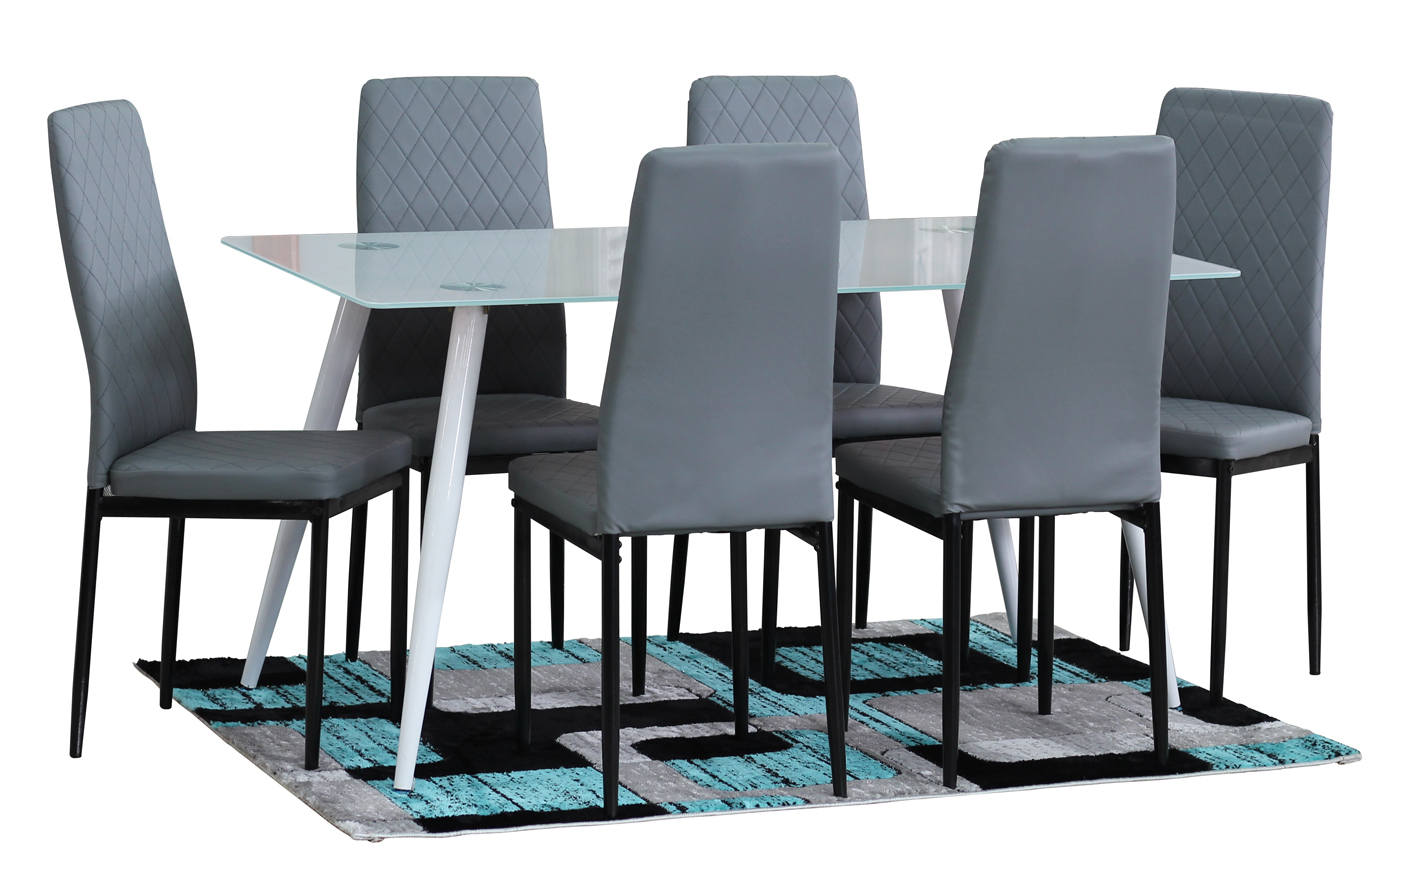 MW-DT1/2 Dining Set Combination Image